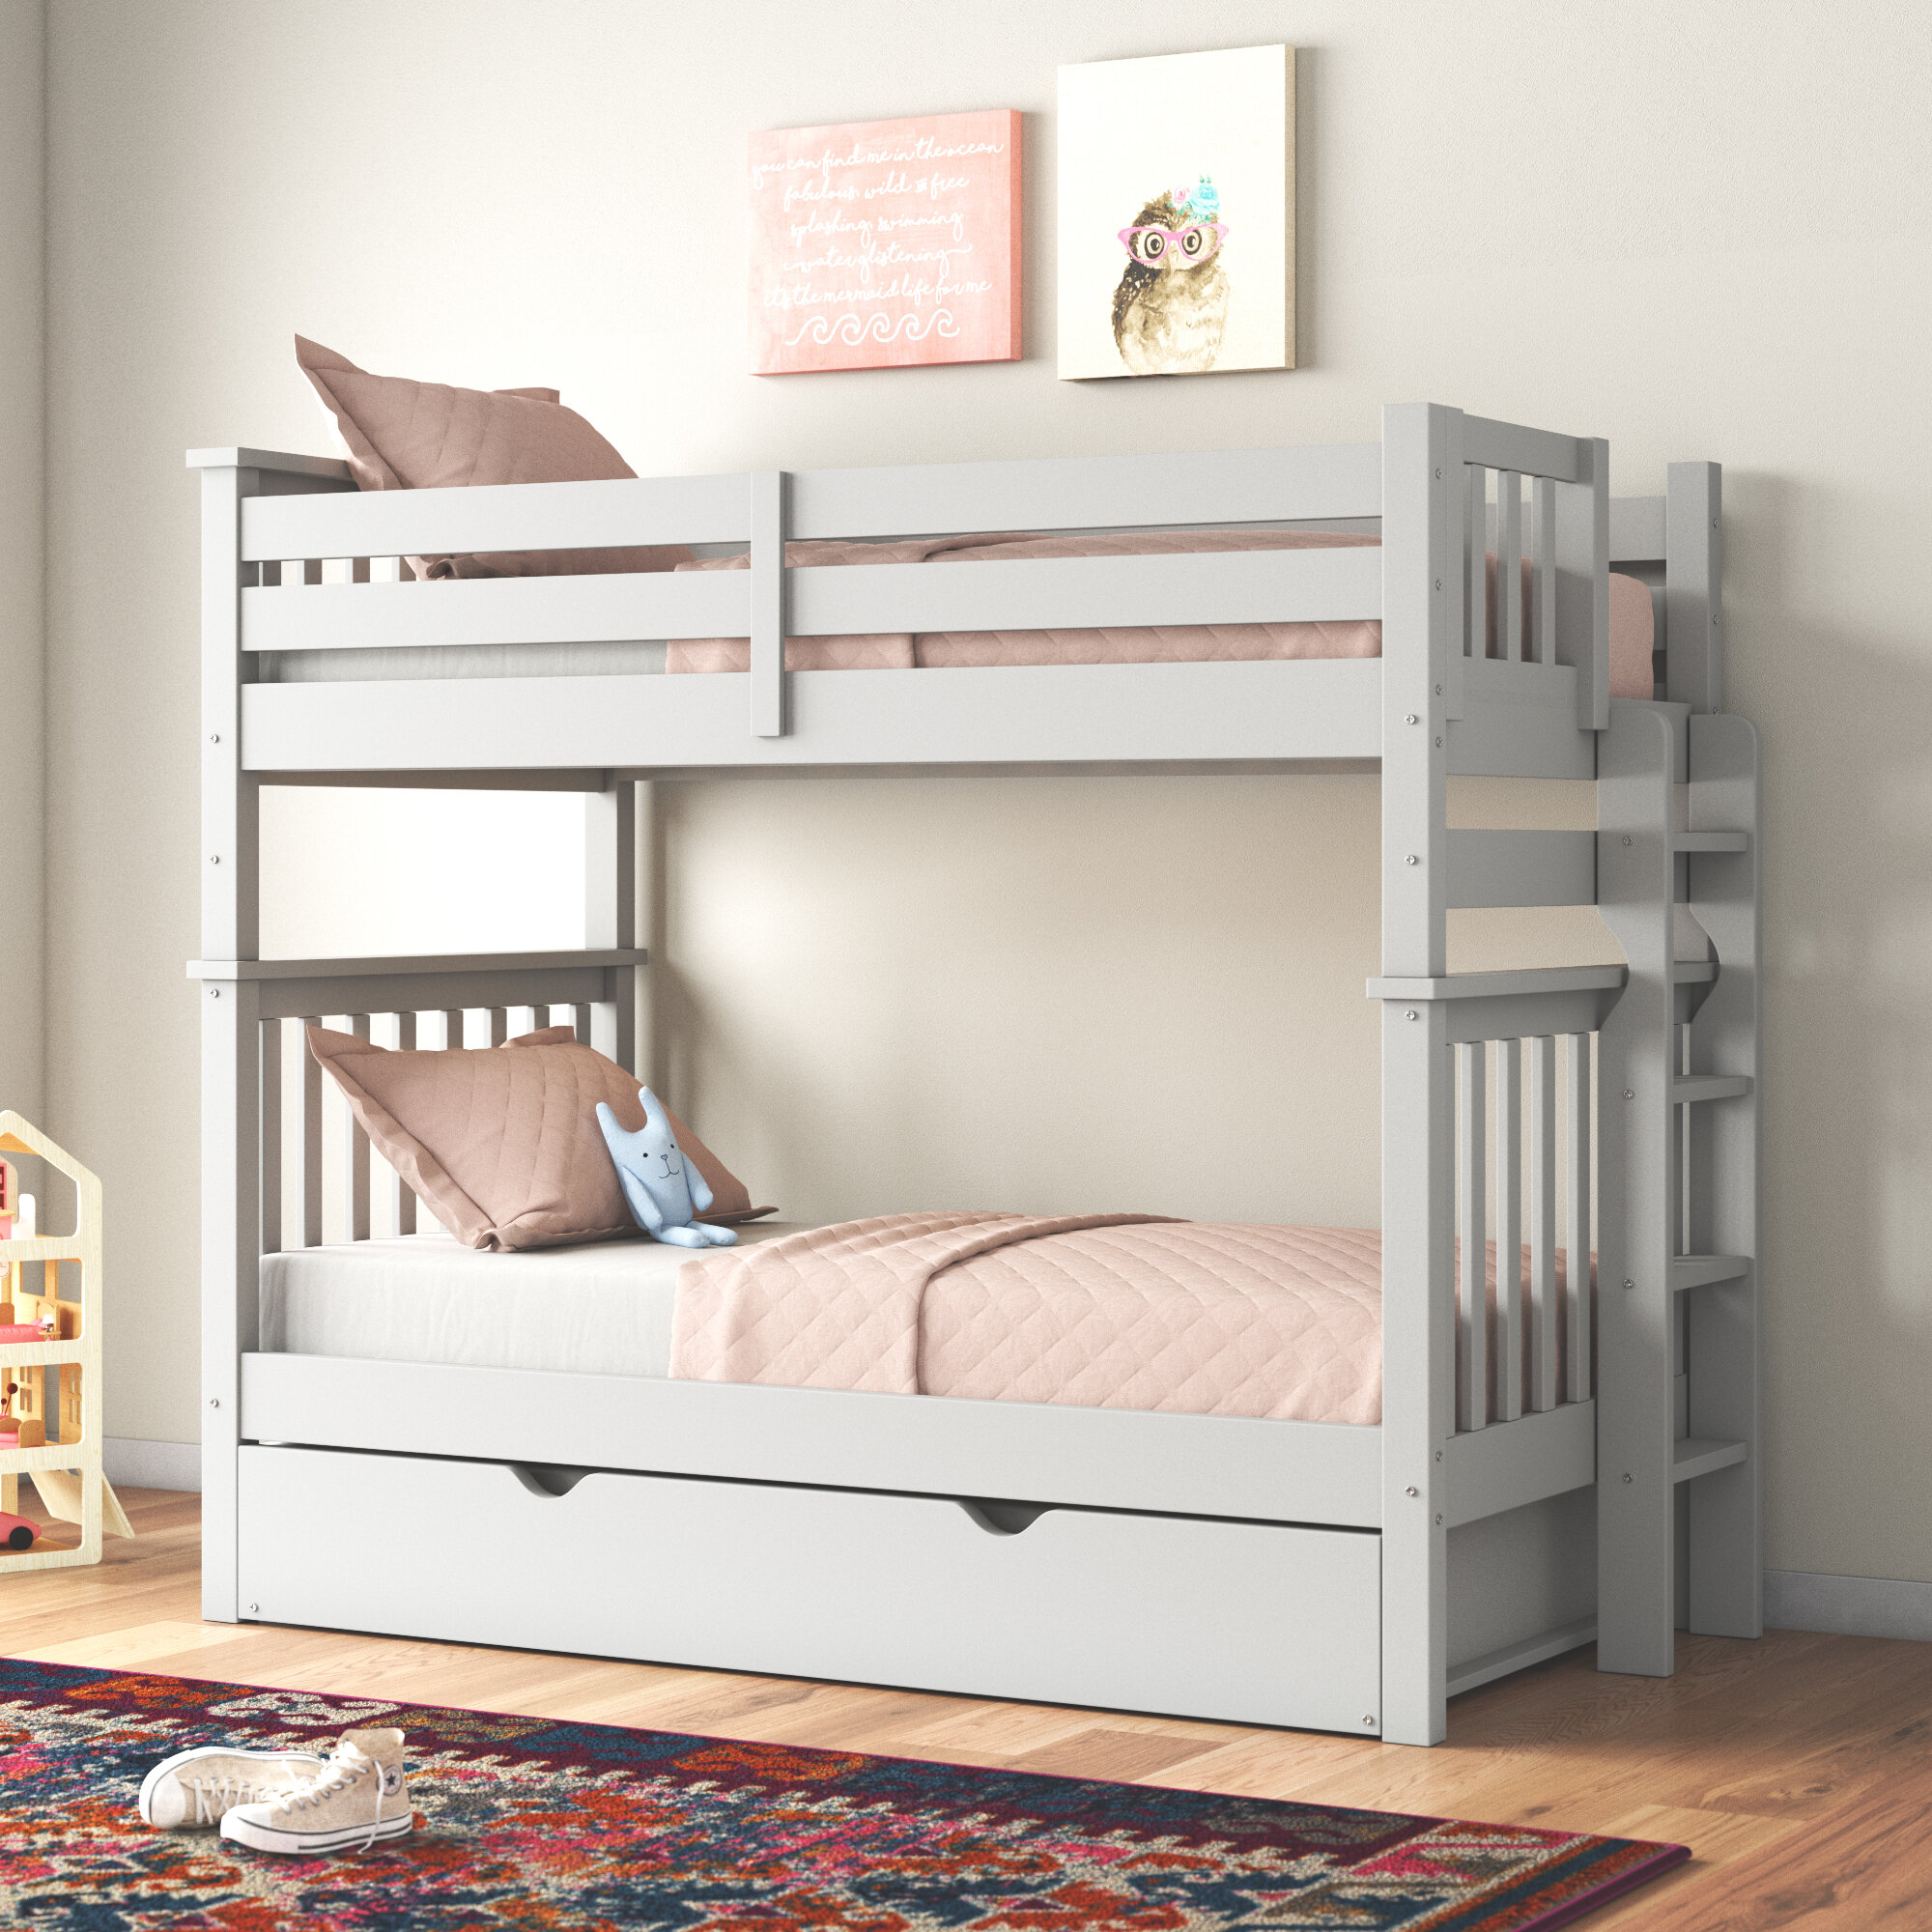 Harriet Bee Treva Tall Twin Over Twin Bunk Bed With Trundle Reviews Wayfair